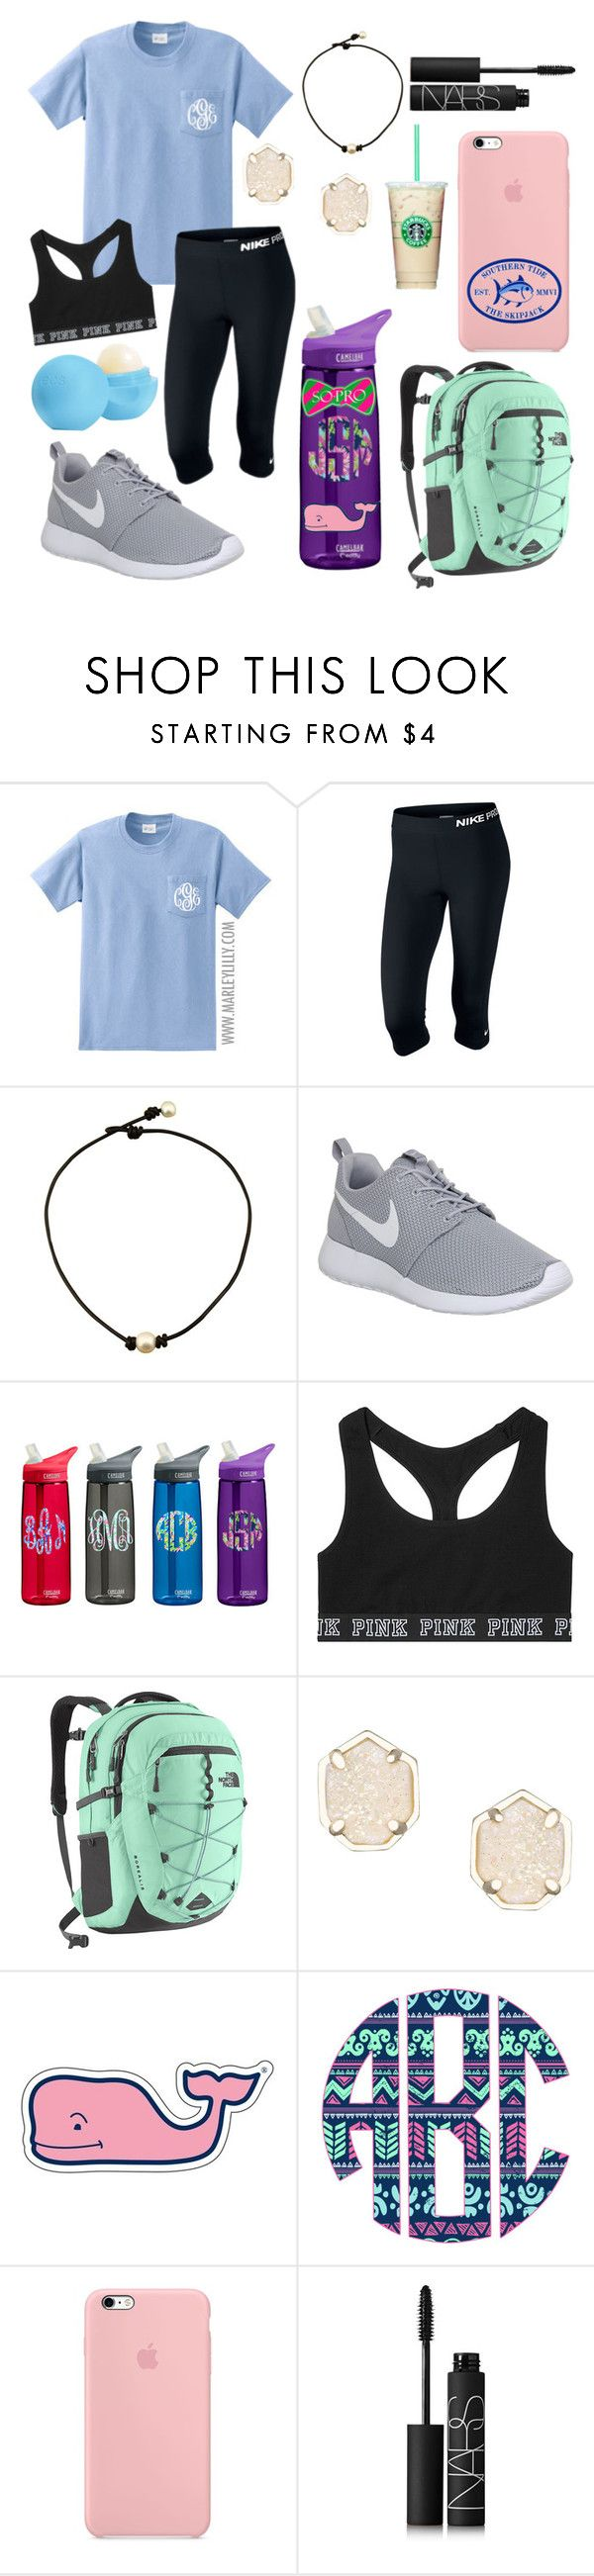 """Thank god for Friday"" by jadenriley21 ❤ liked on Polyvore featuring NIKE, Victoria's Secret, The North Face, Kendra Scott, Vineyard Vines, Southern Tide, NARS Cosmetics and Eos"